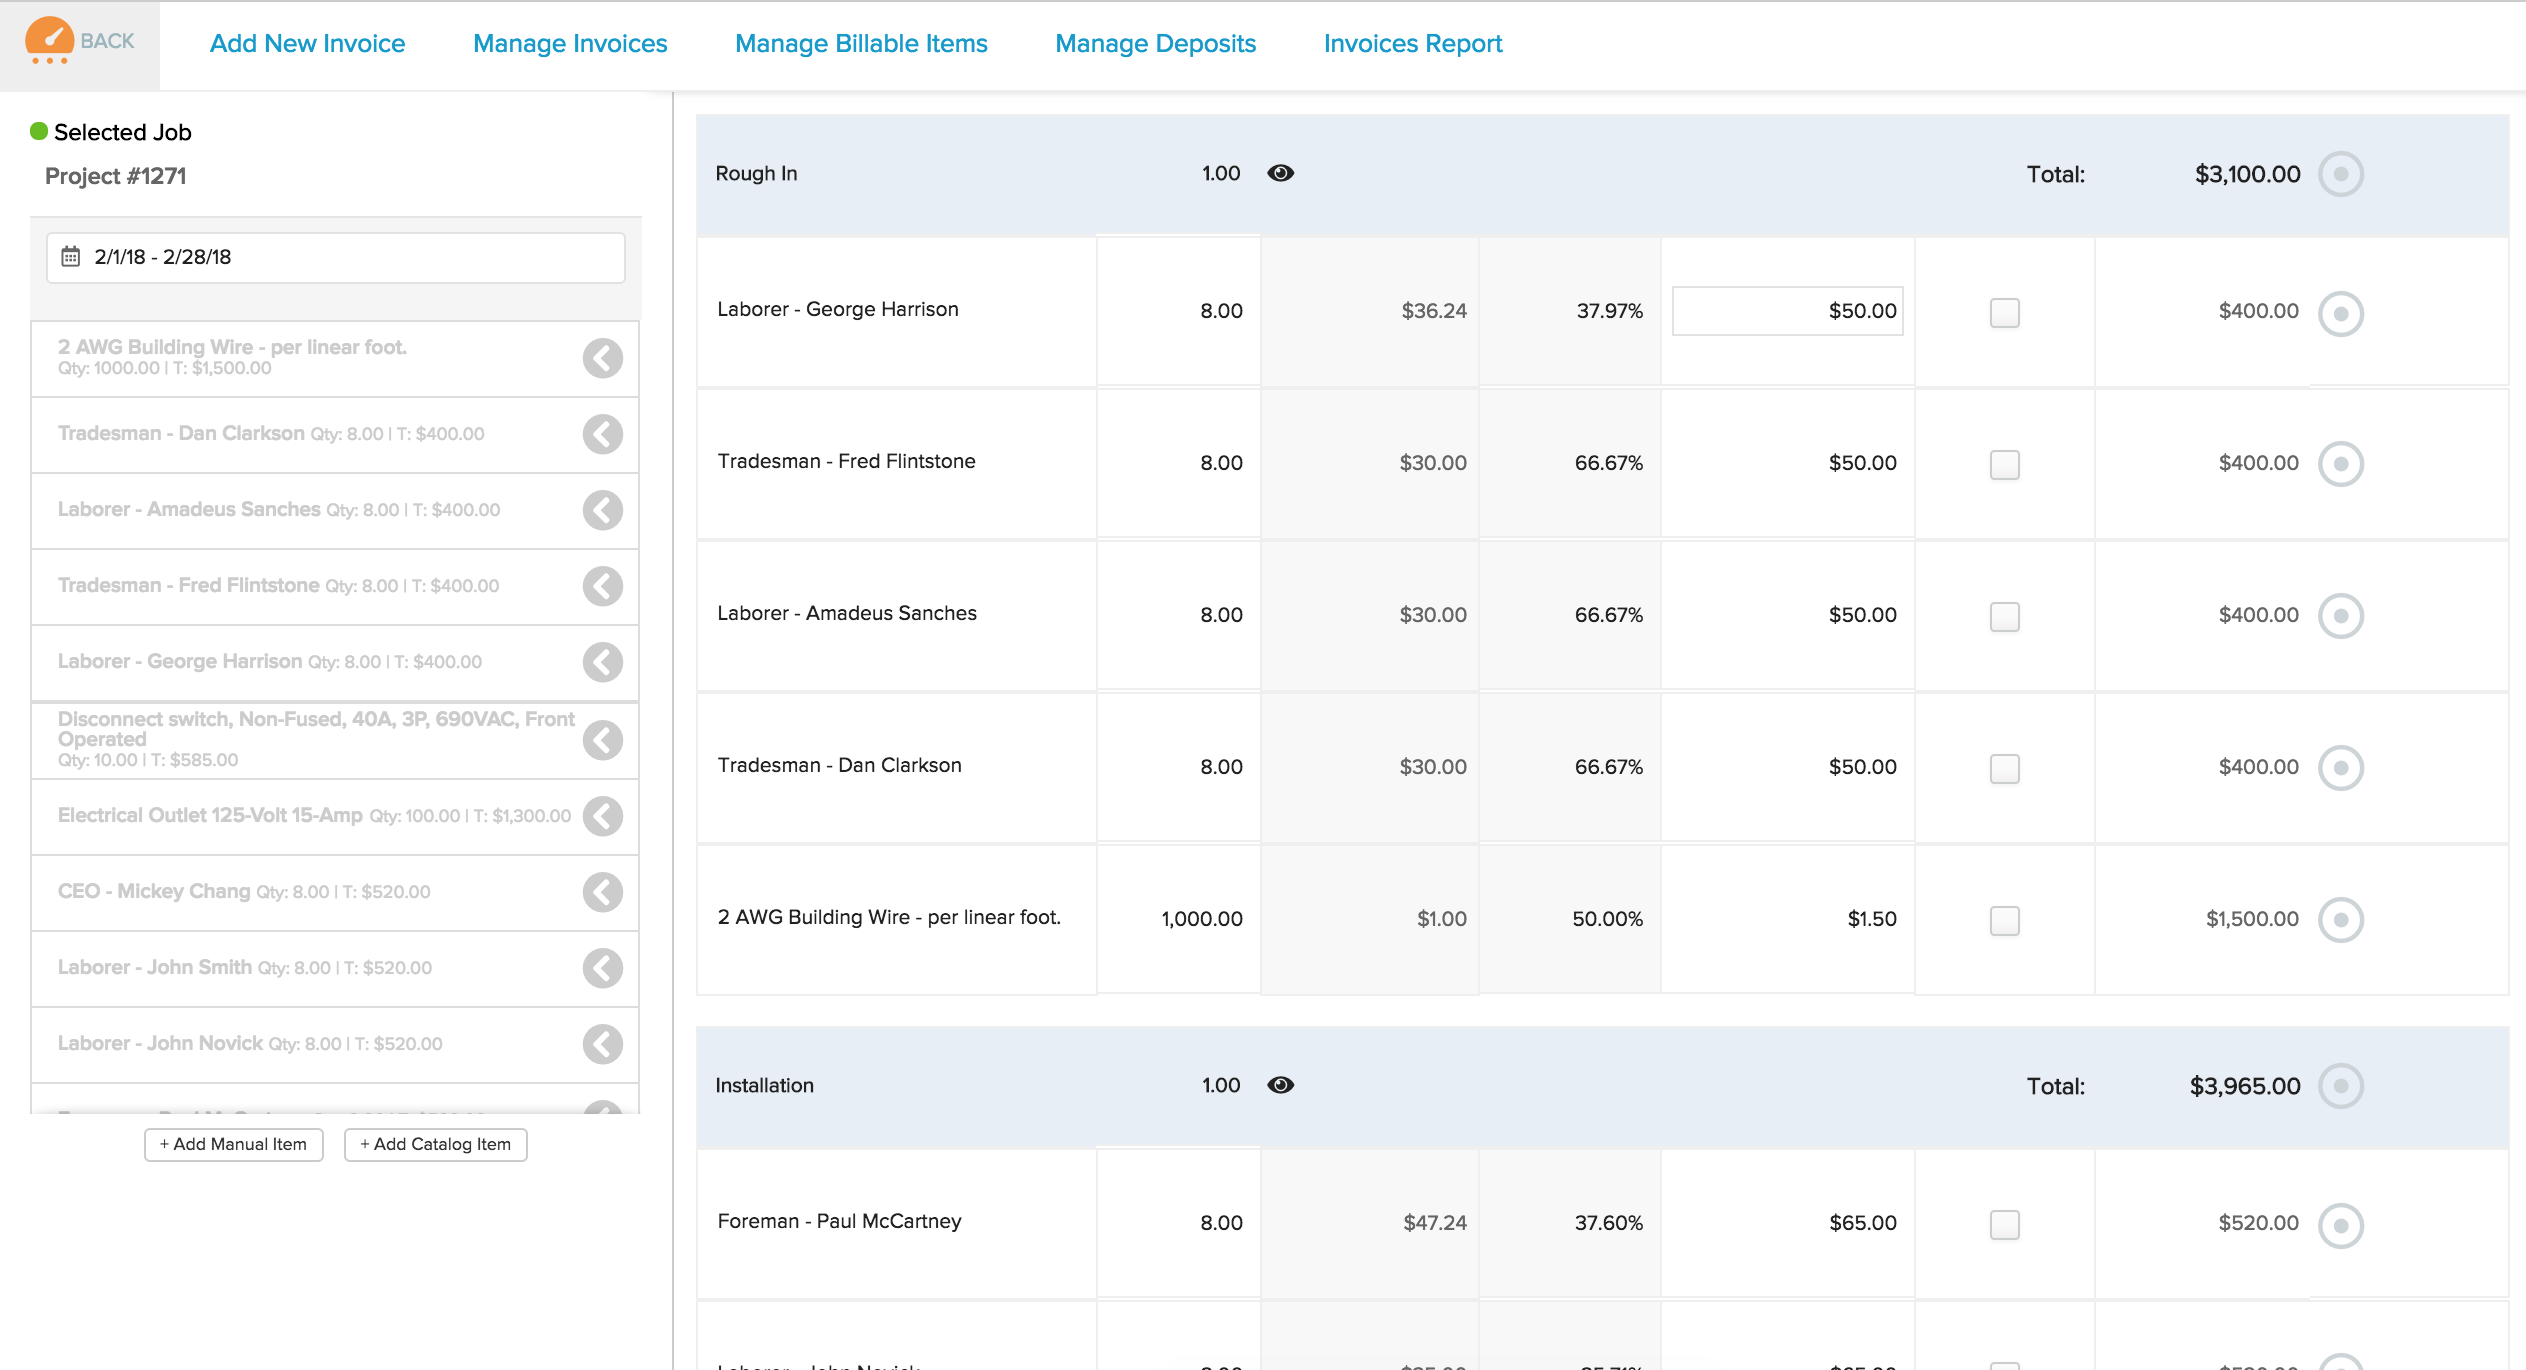 Screen-Shot-2018-02-11-at-3.52.09-PM Grouping Options on Cost Plus Invoices